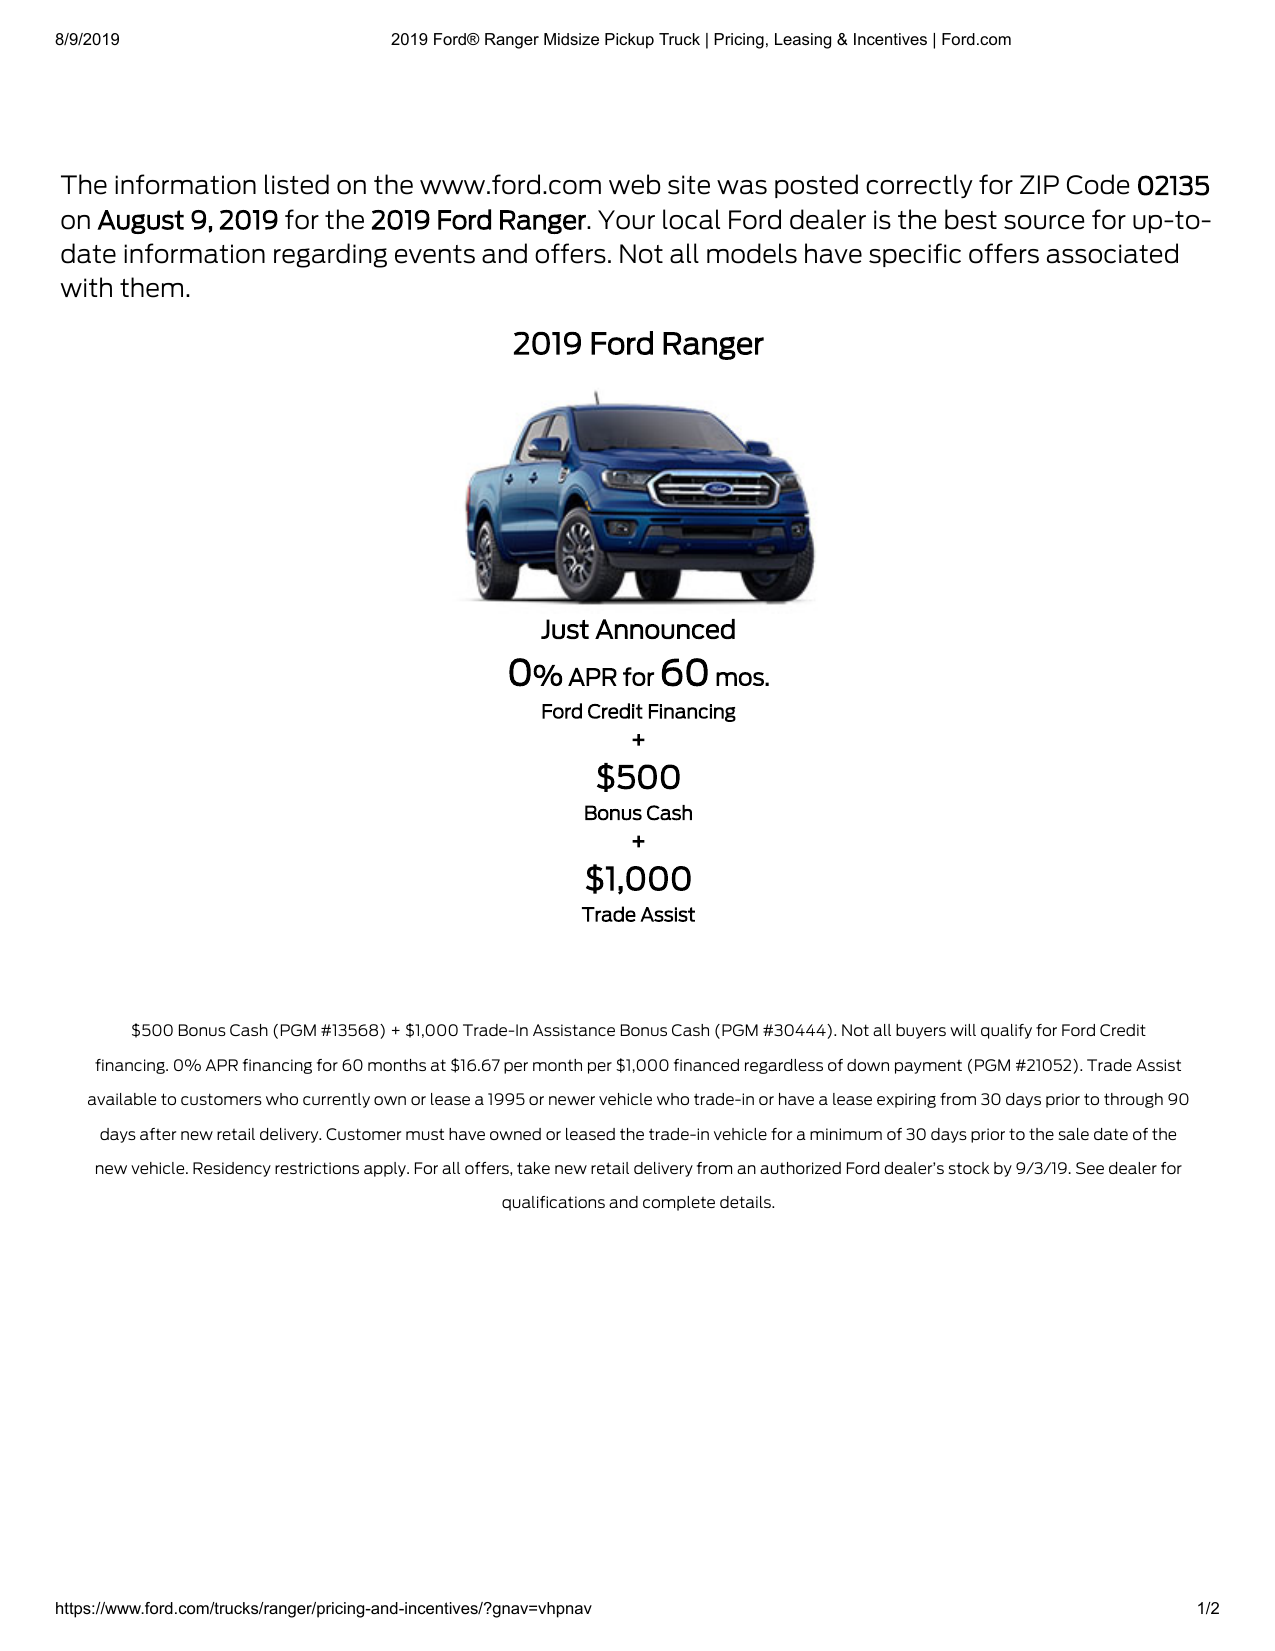 2019 Ford® Ranger Midsize Pickup Truck _ Pricing, Leasing & Incentives _ Ford.com-East1.png